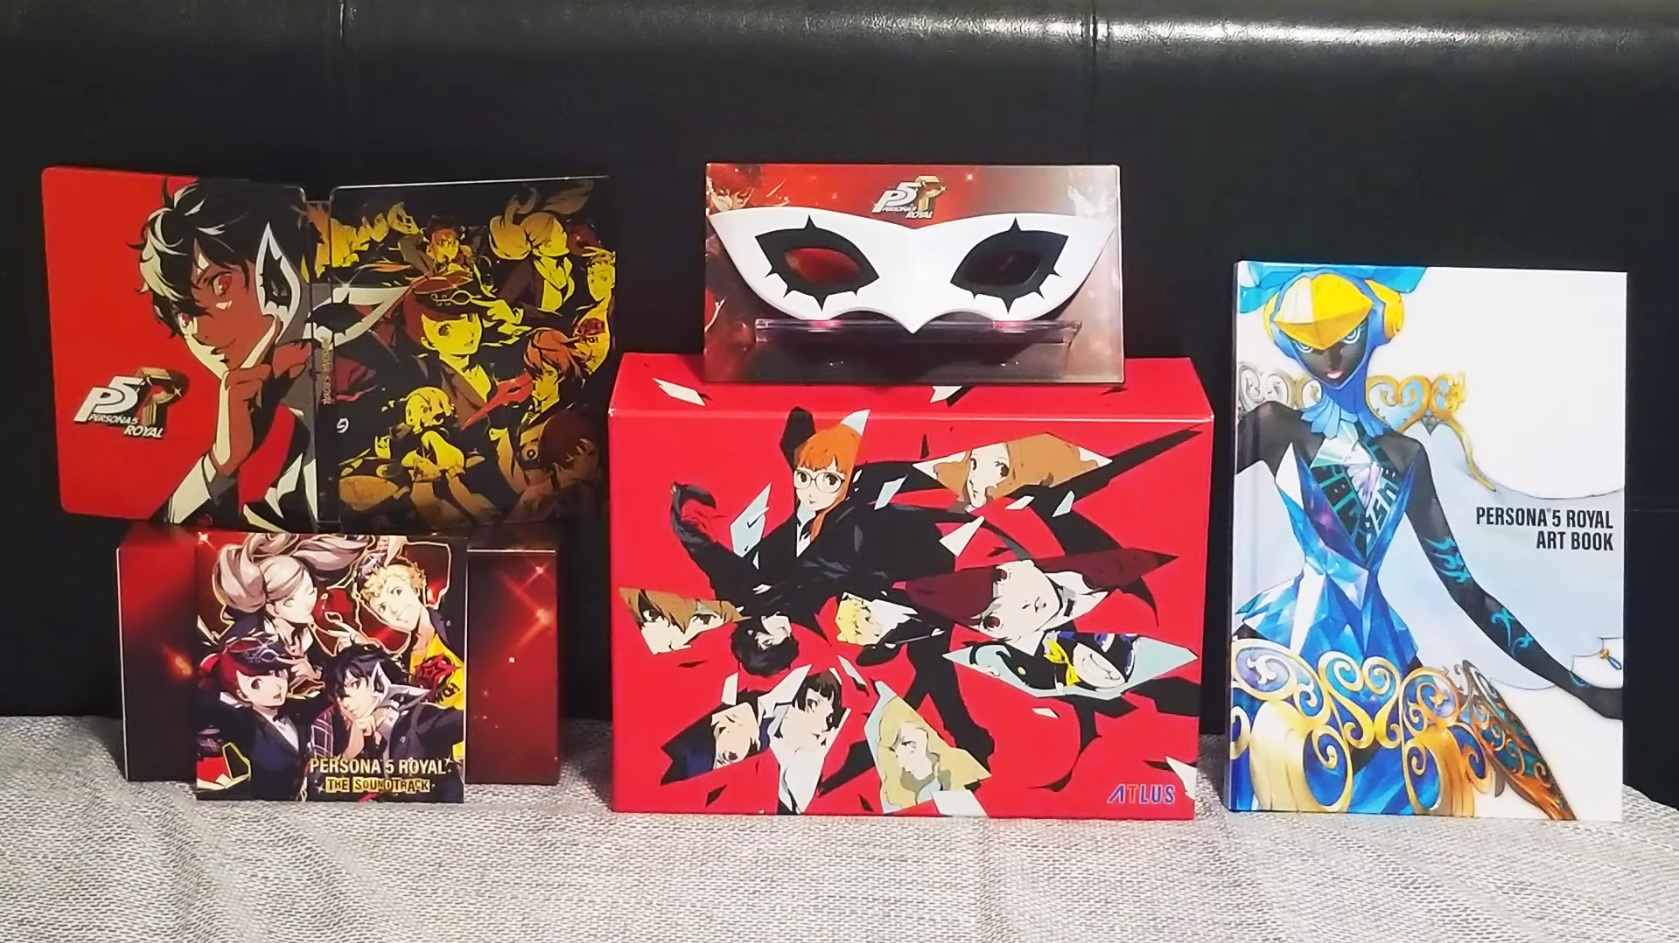 unboxing-persona-5-royal